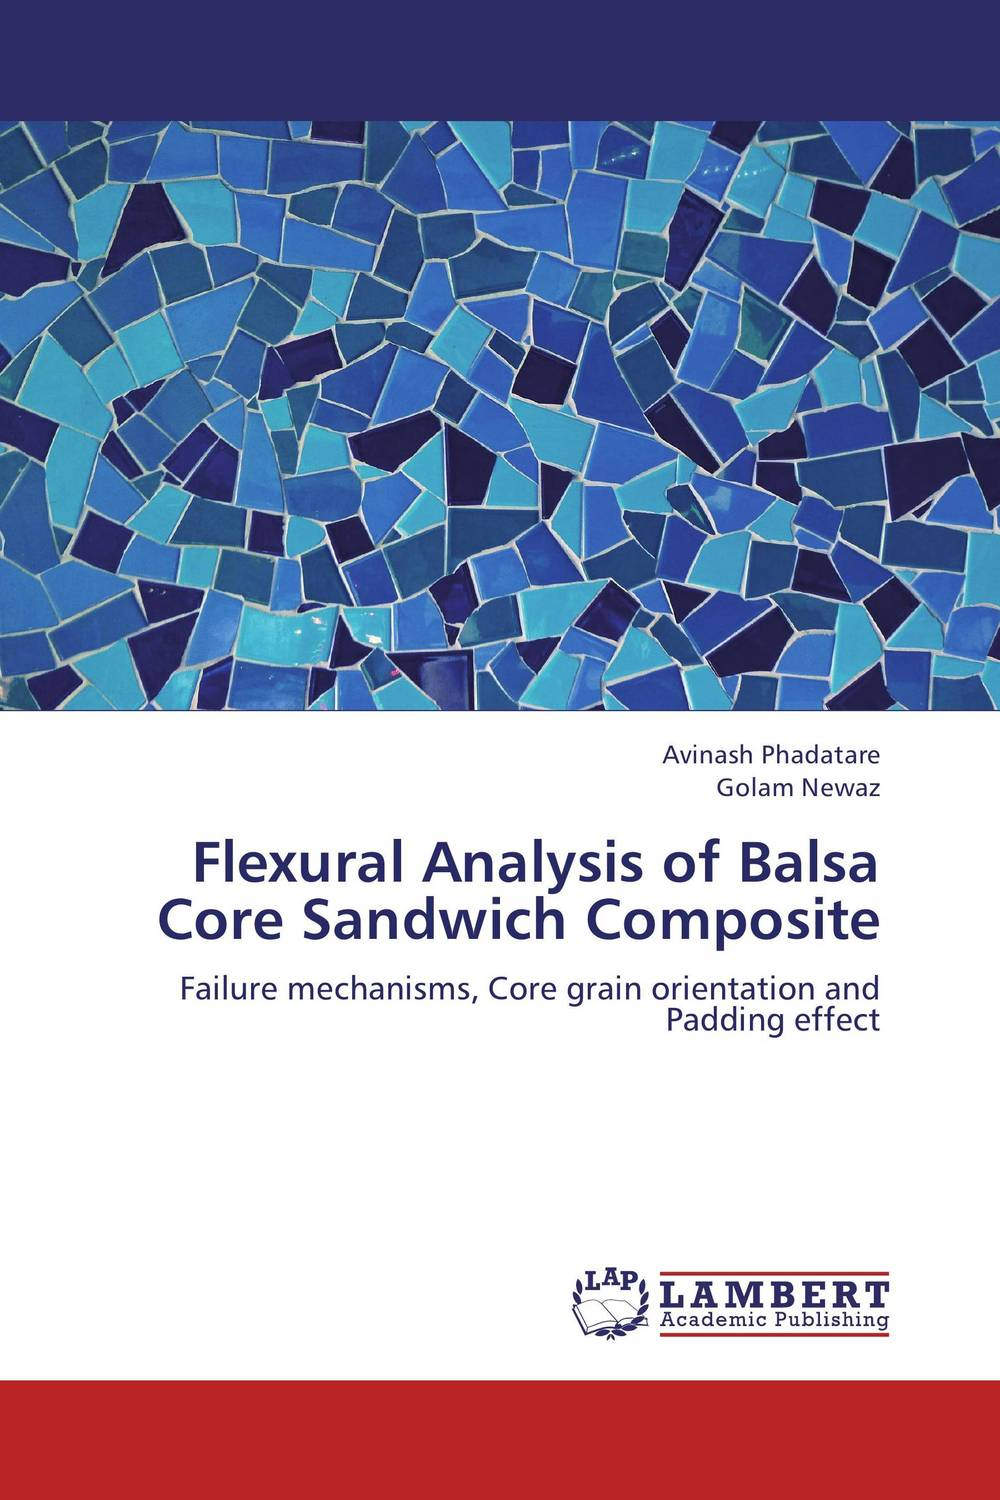 Flexural Analysis of Balsa Core Sandwich Composite dynamic analysis and failure modes of simple structures